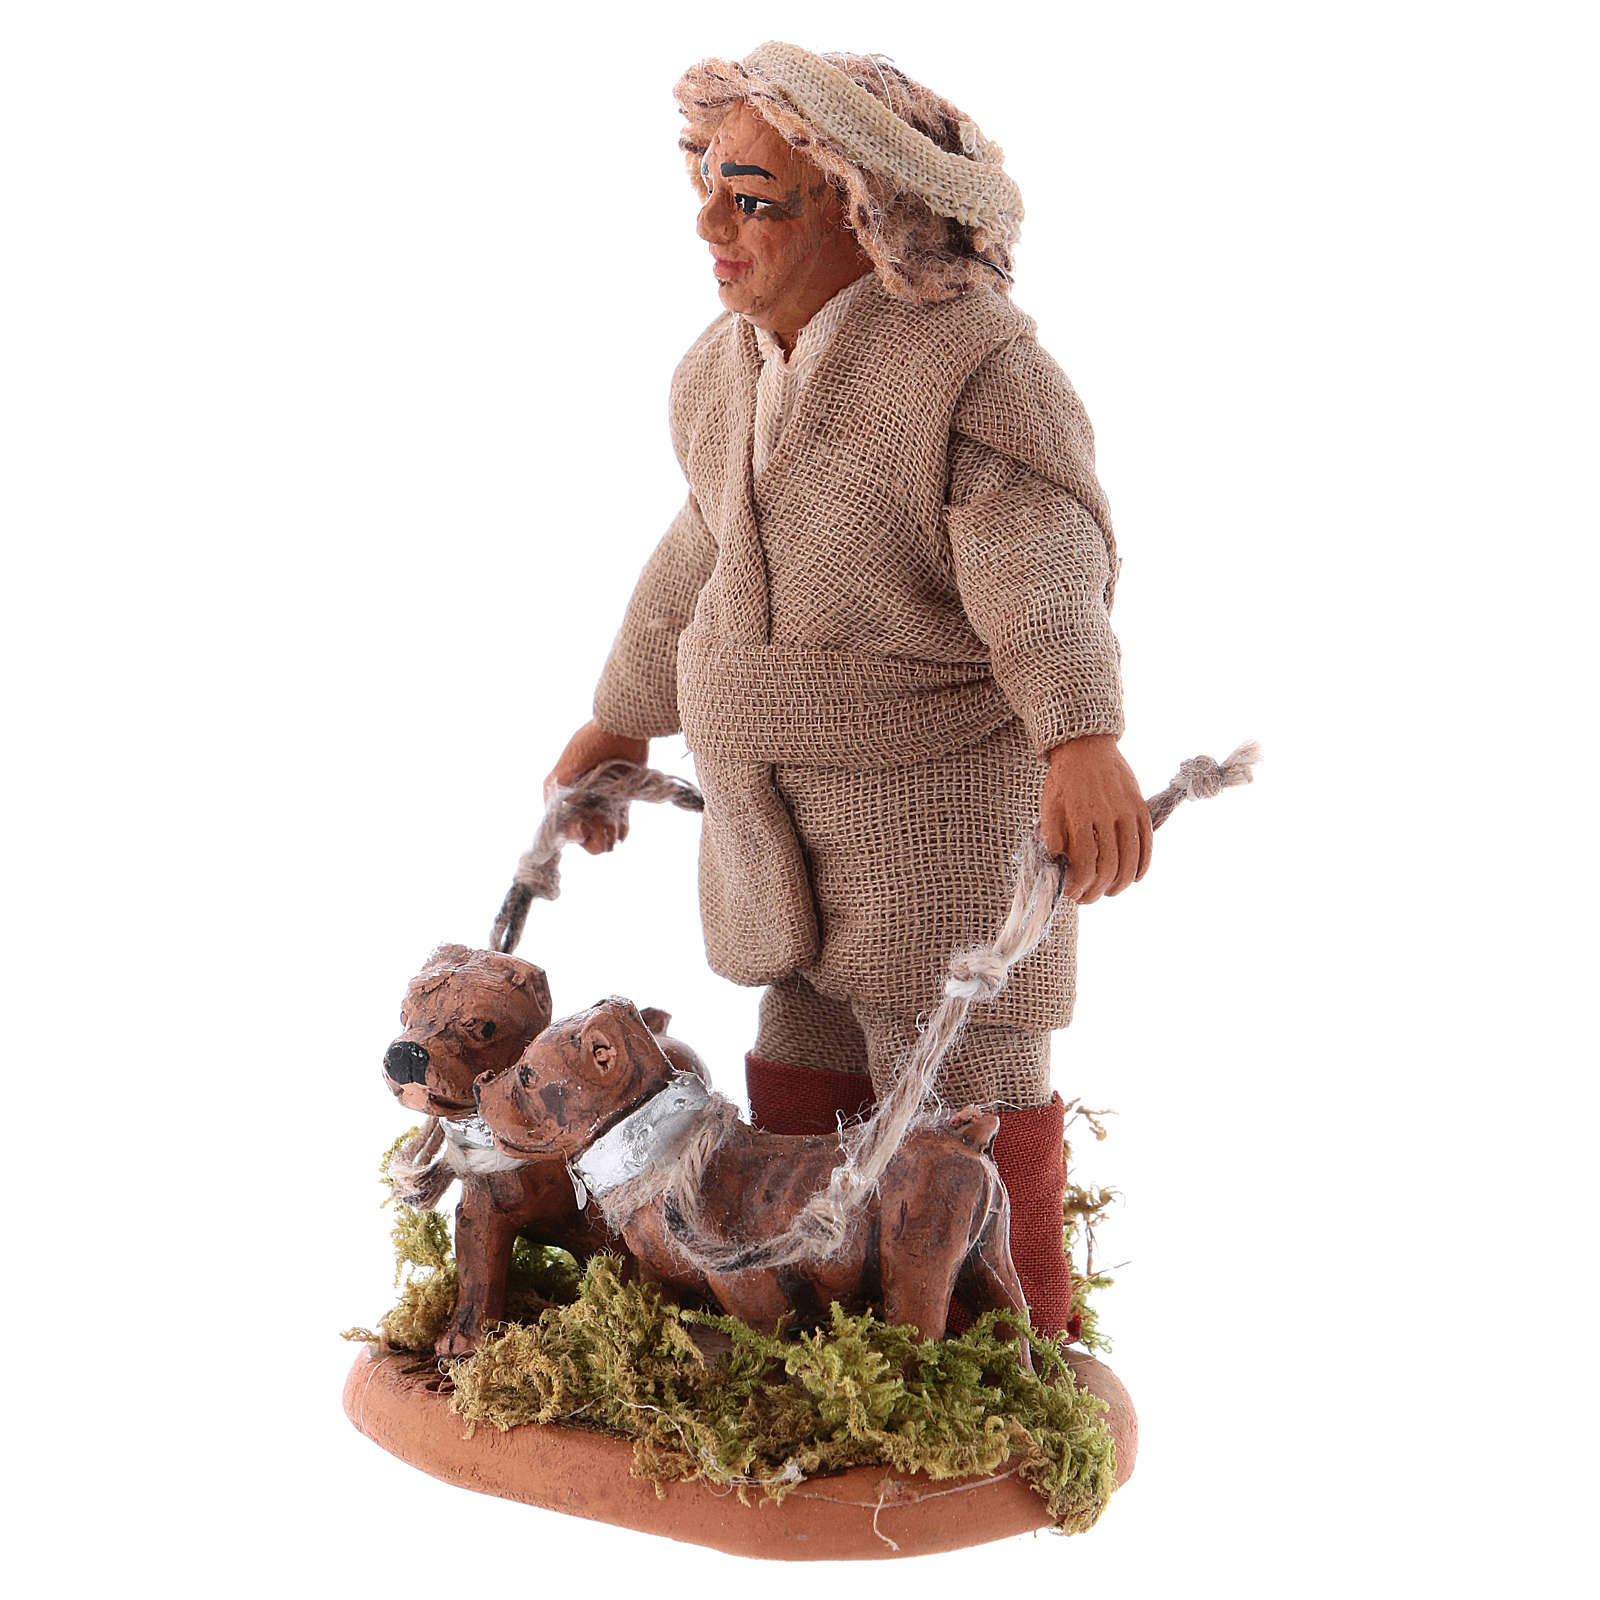 Huner with dogs 10cm, Neapolitan Nativity figurine 4